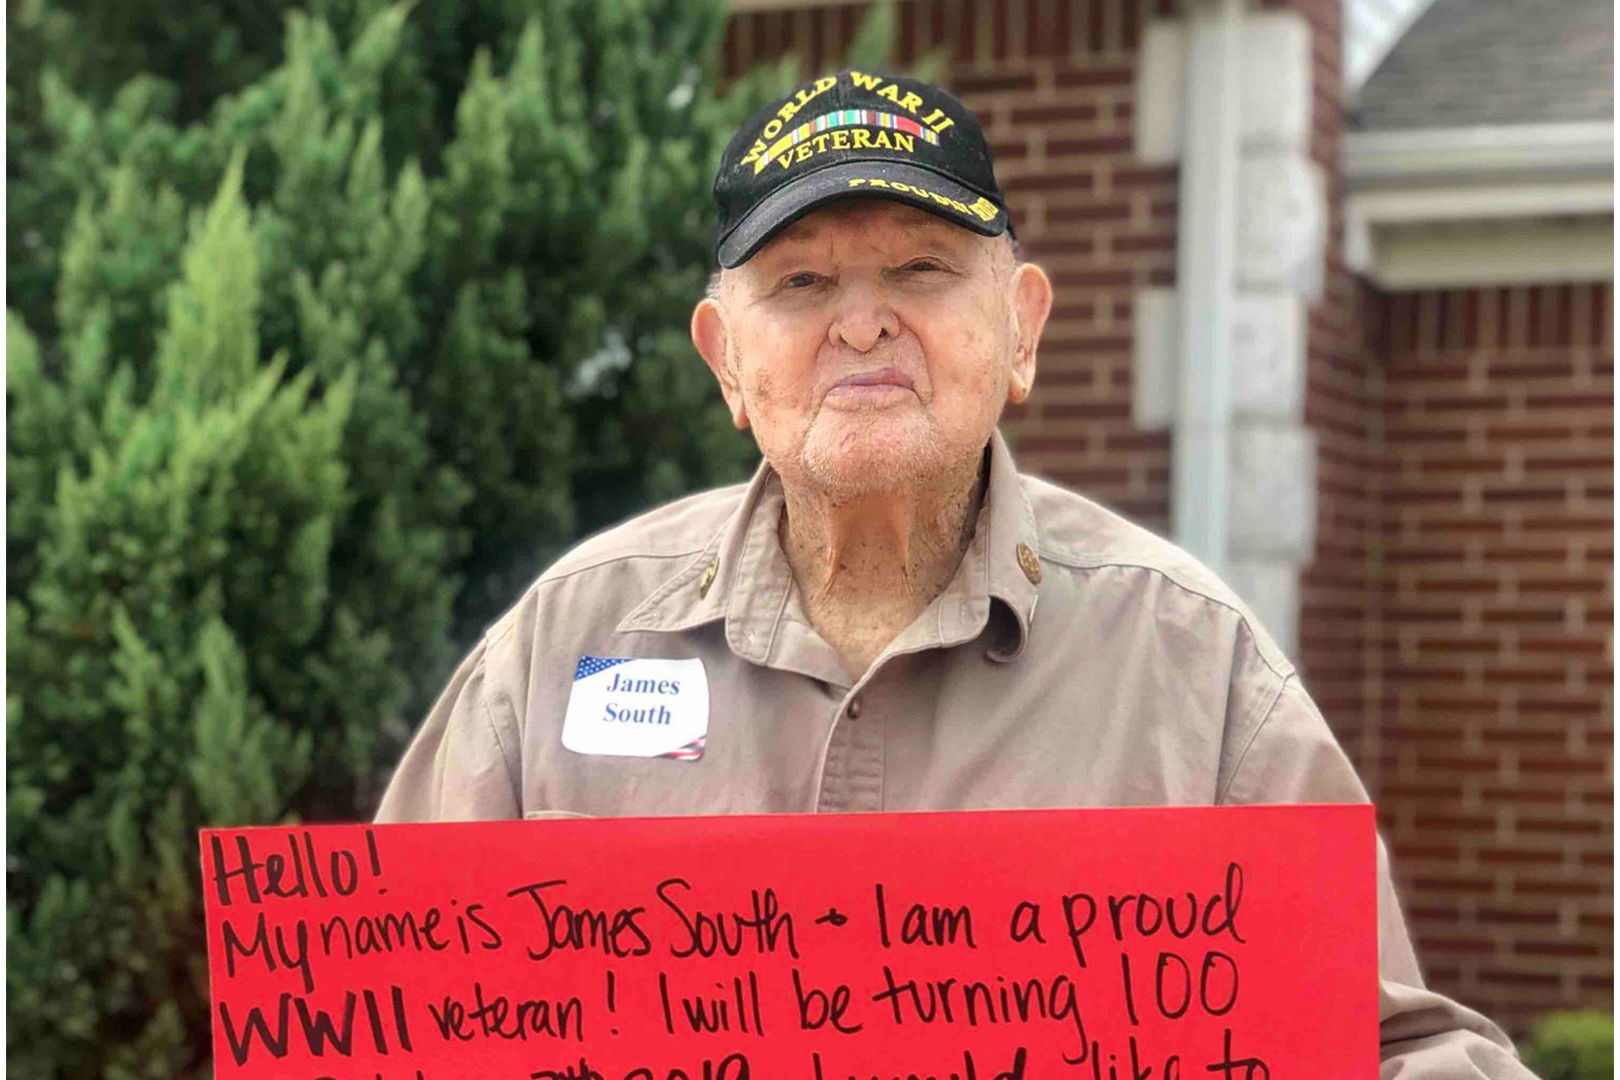 Texas WWII Vet Wants 100 Birthday Cards for His 100th Birthday